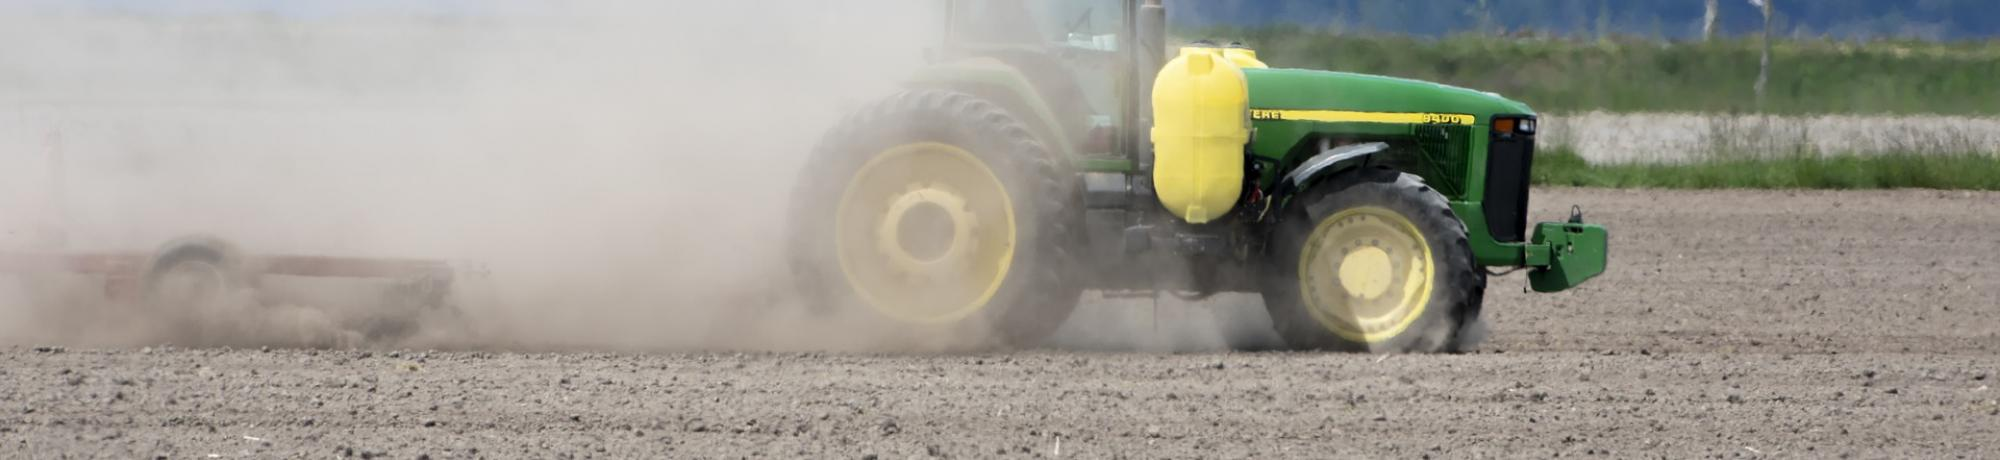 Tractor creating dust in dry field